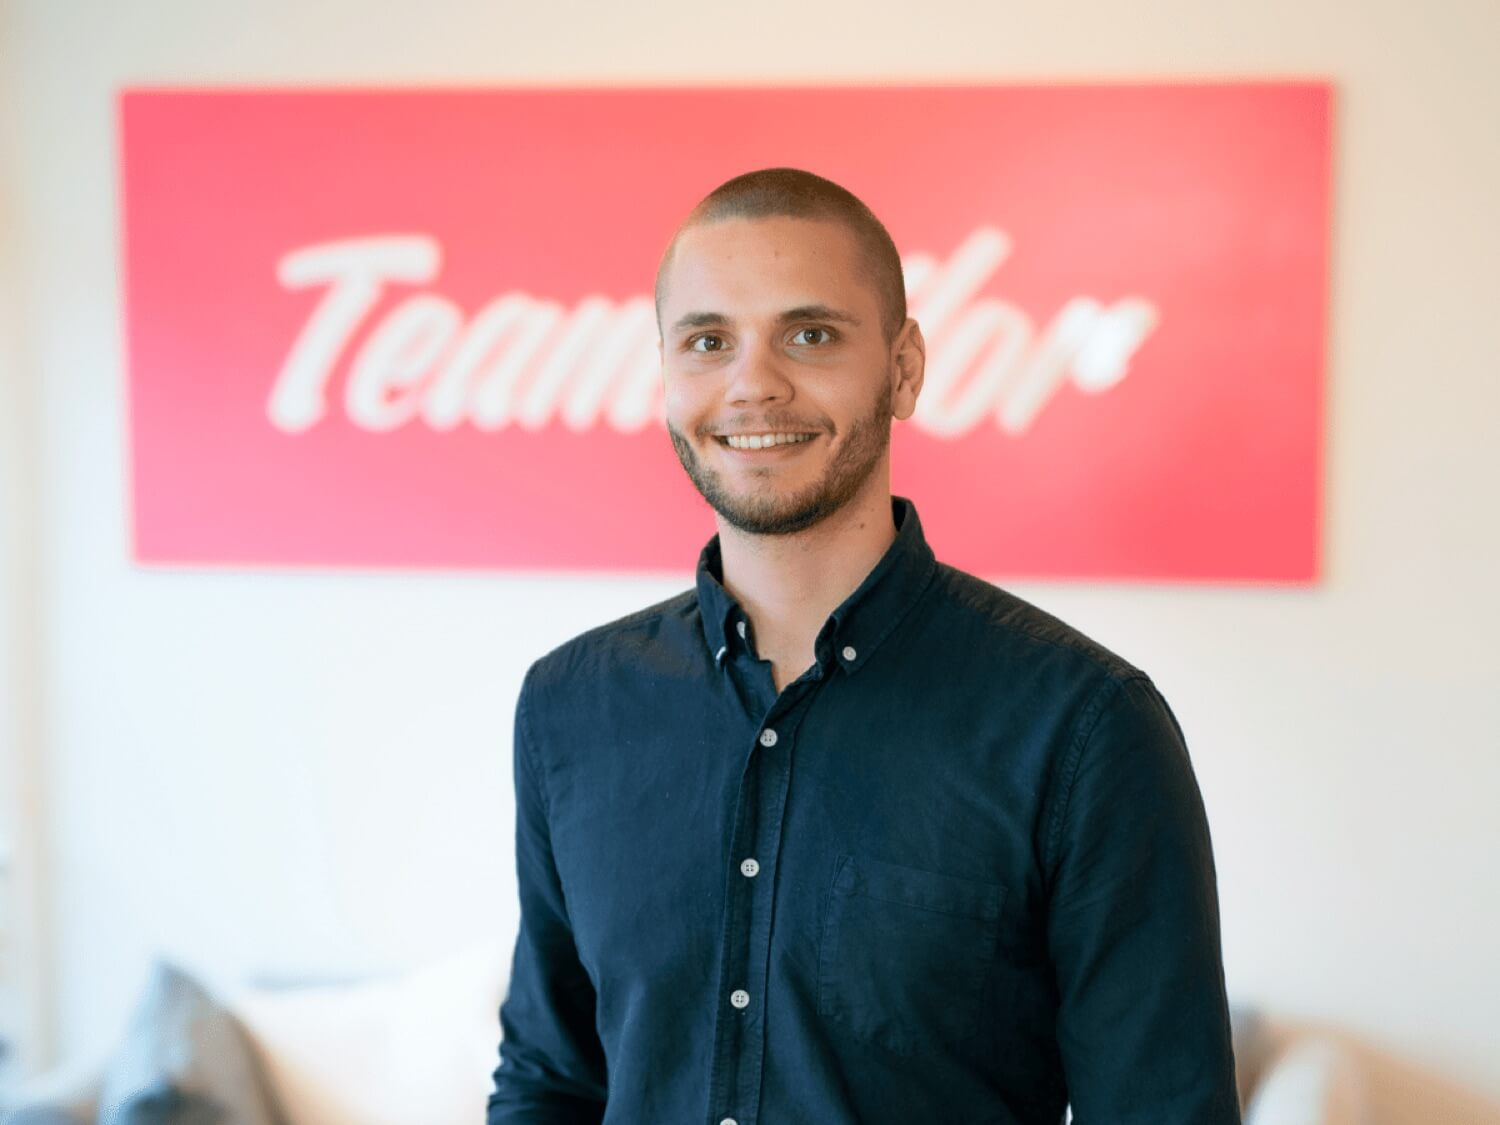 Interview with Fredrik Mellander, Head of Partnerships at Teamtailor